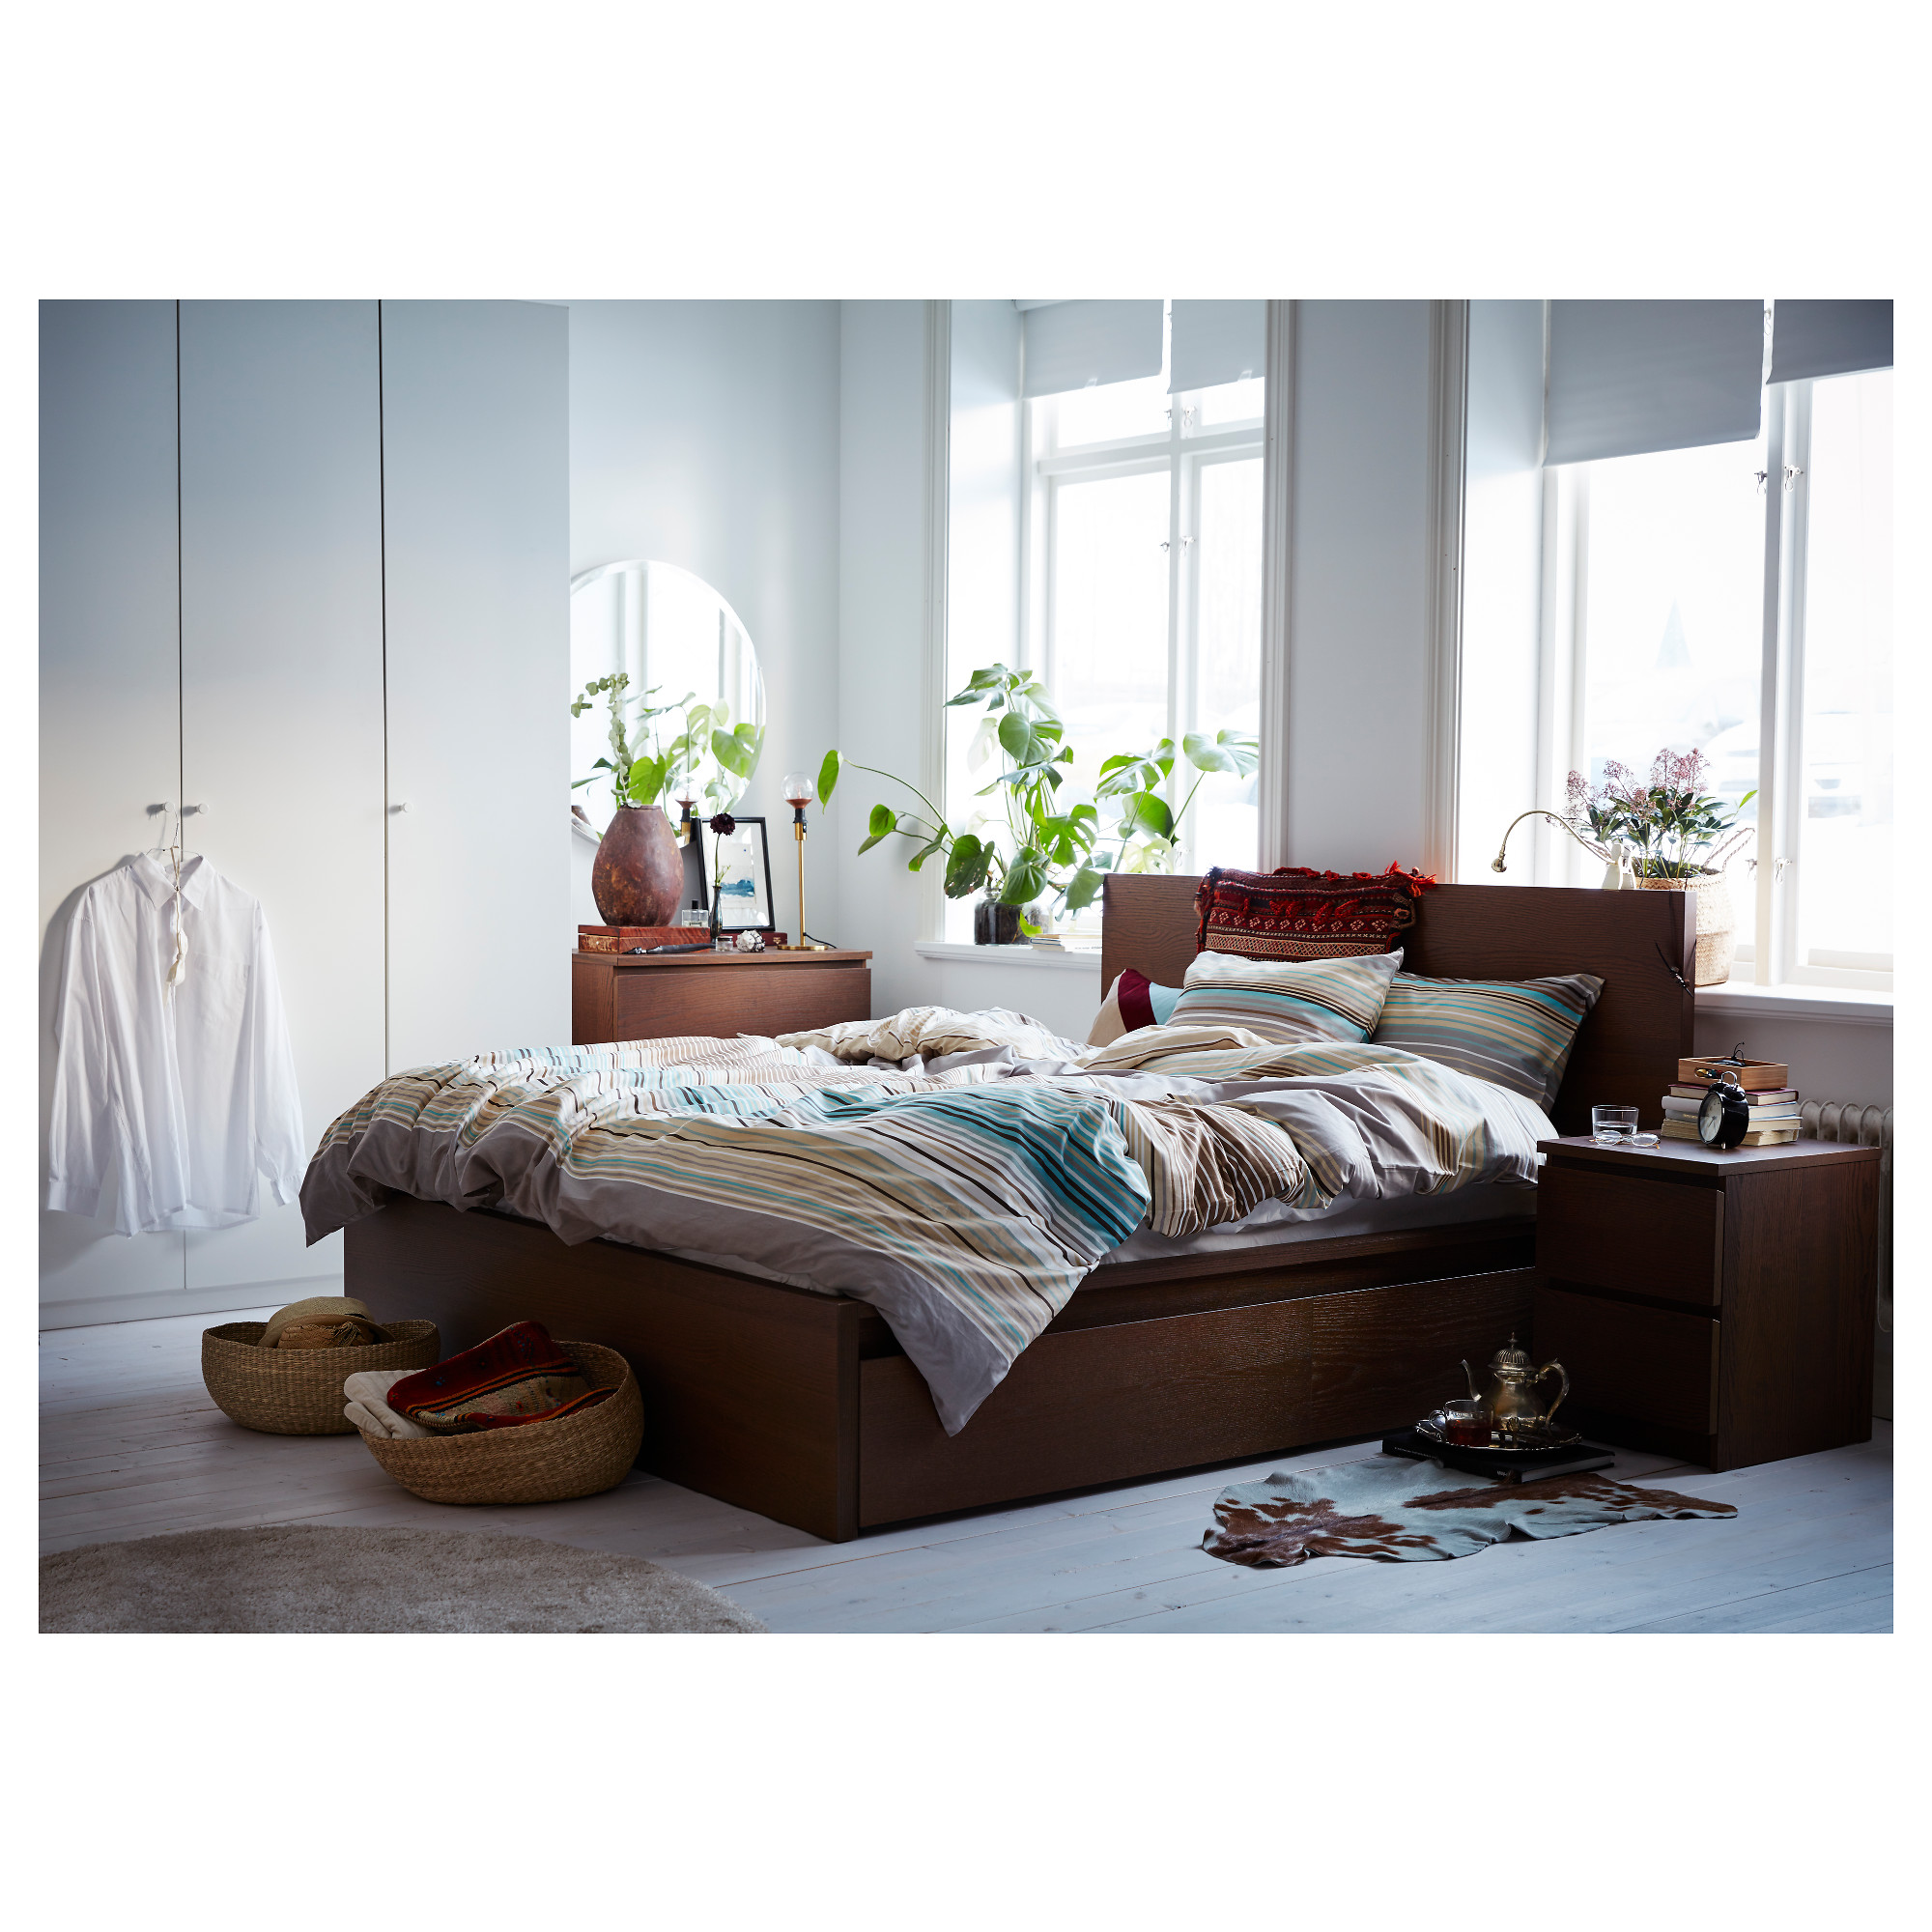 Bed Frames With Storage Drawers malm high bed frame/2 storage boxes - queen, luröy - ikea